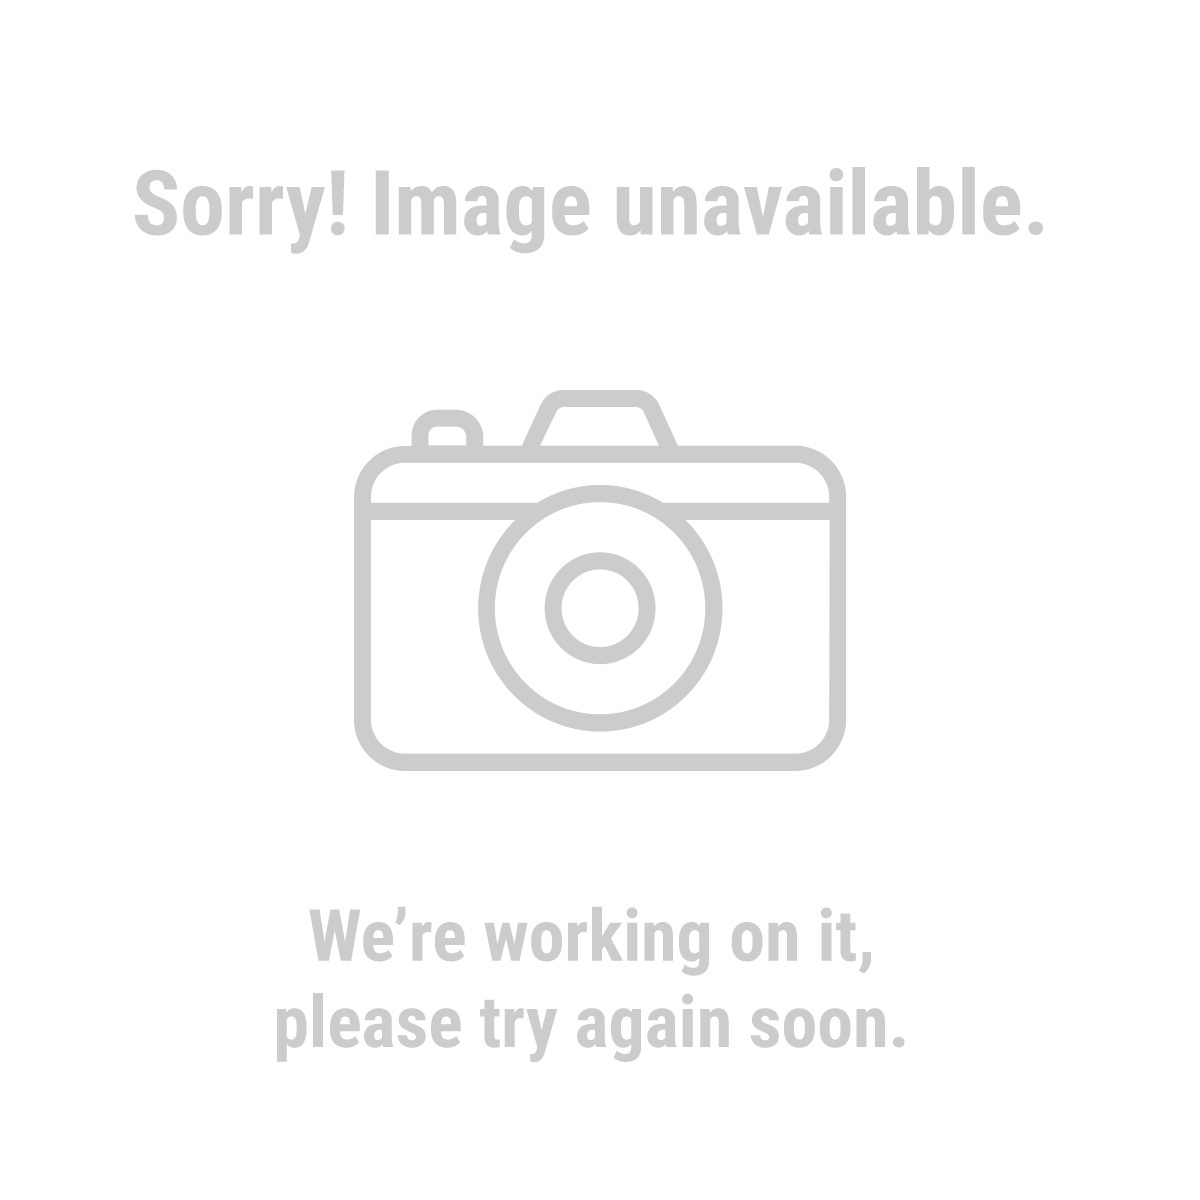 Haul-Master® 93227 Red Clearance Marker Lamps, Pair